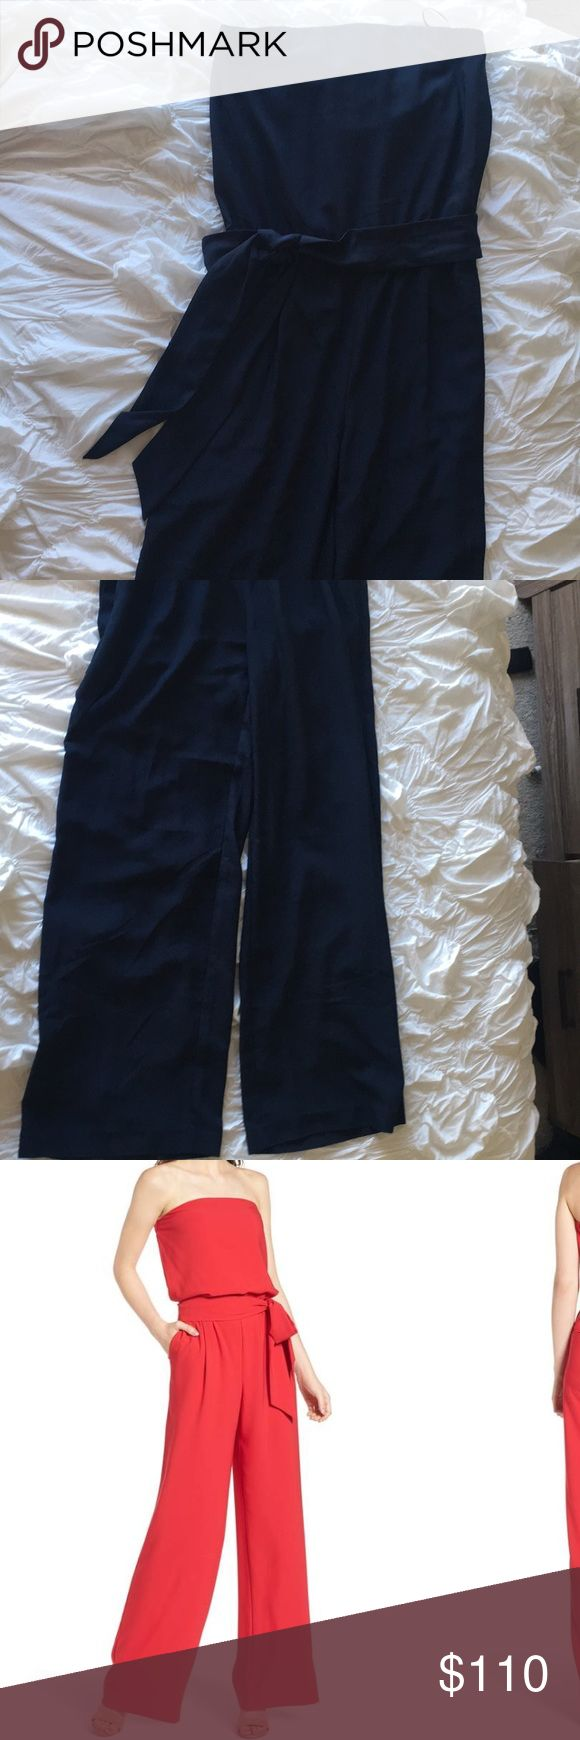 Strapless Jumpsuit - Navy Hard to take pictures of, but it's the red jumpsuit just in navy. Strapless, ties around the waist, wide legged - super cute and flattering! Only worn once. Trouve Pants Jumpsuits & Rompers